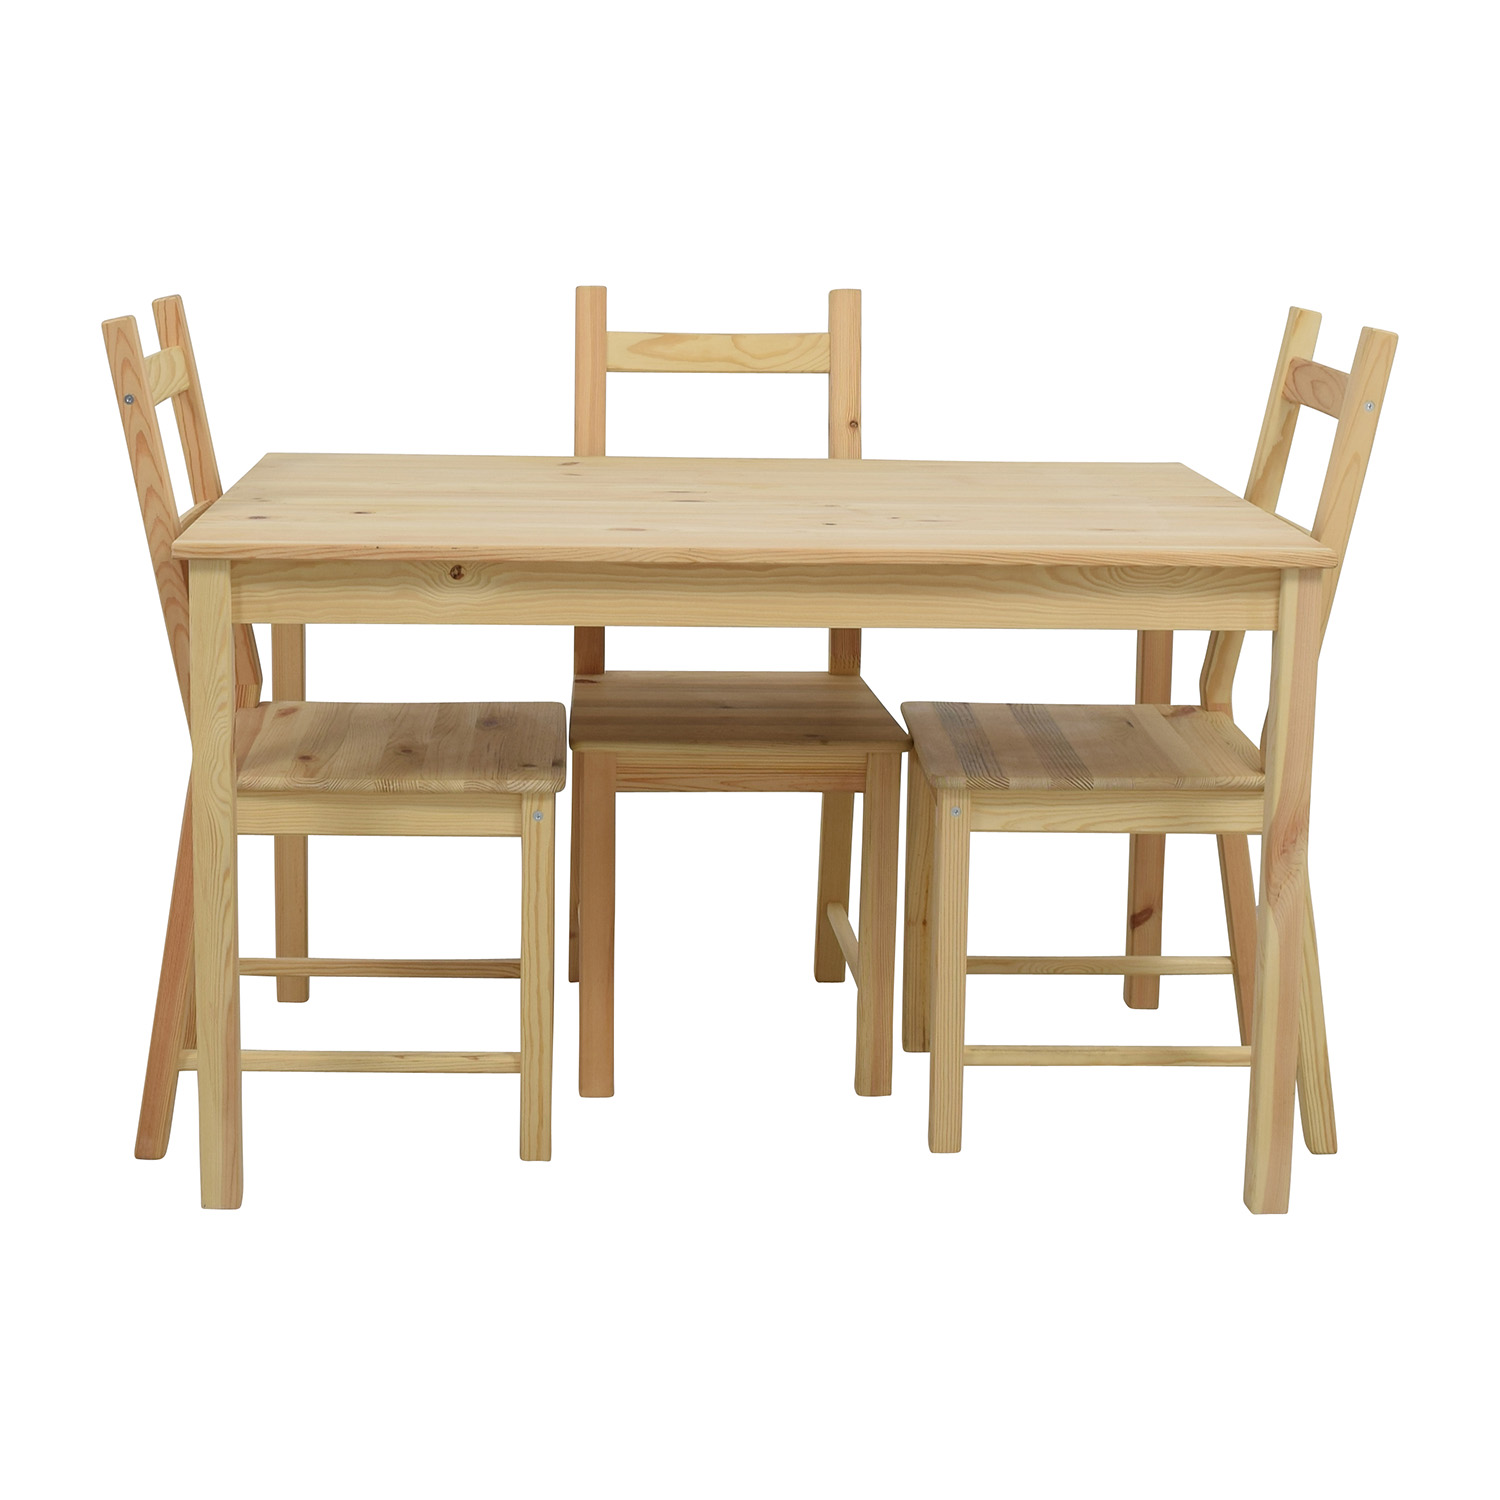 OFF IKEA IKEA INGO Pine Table with IVAR Pine Chairs Tables